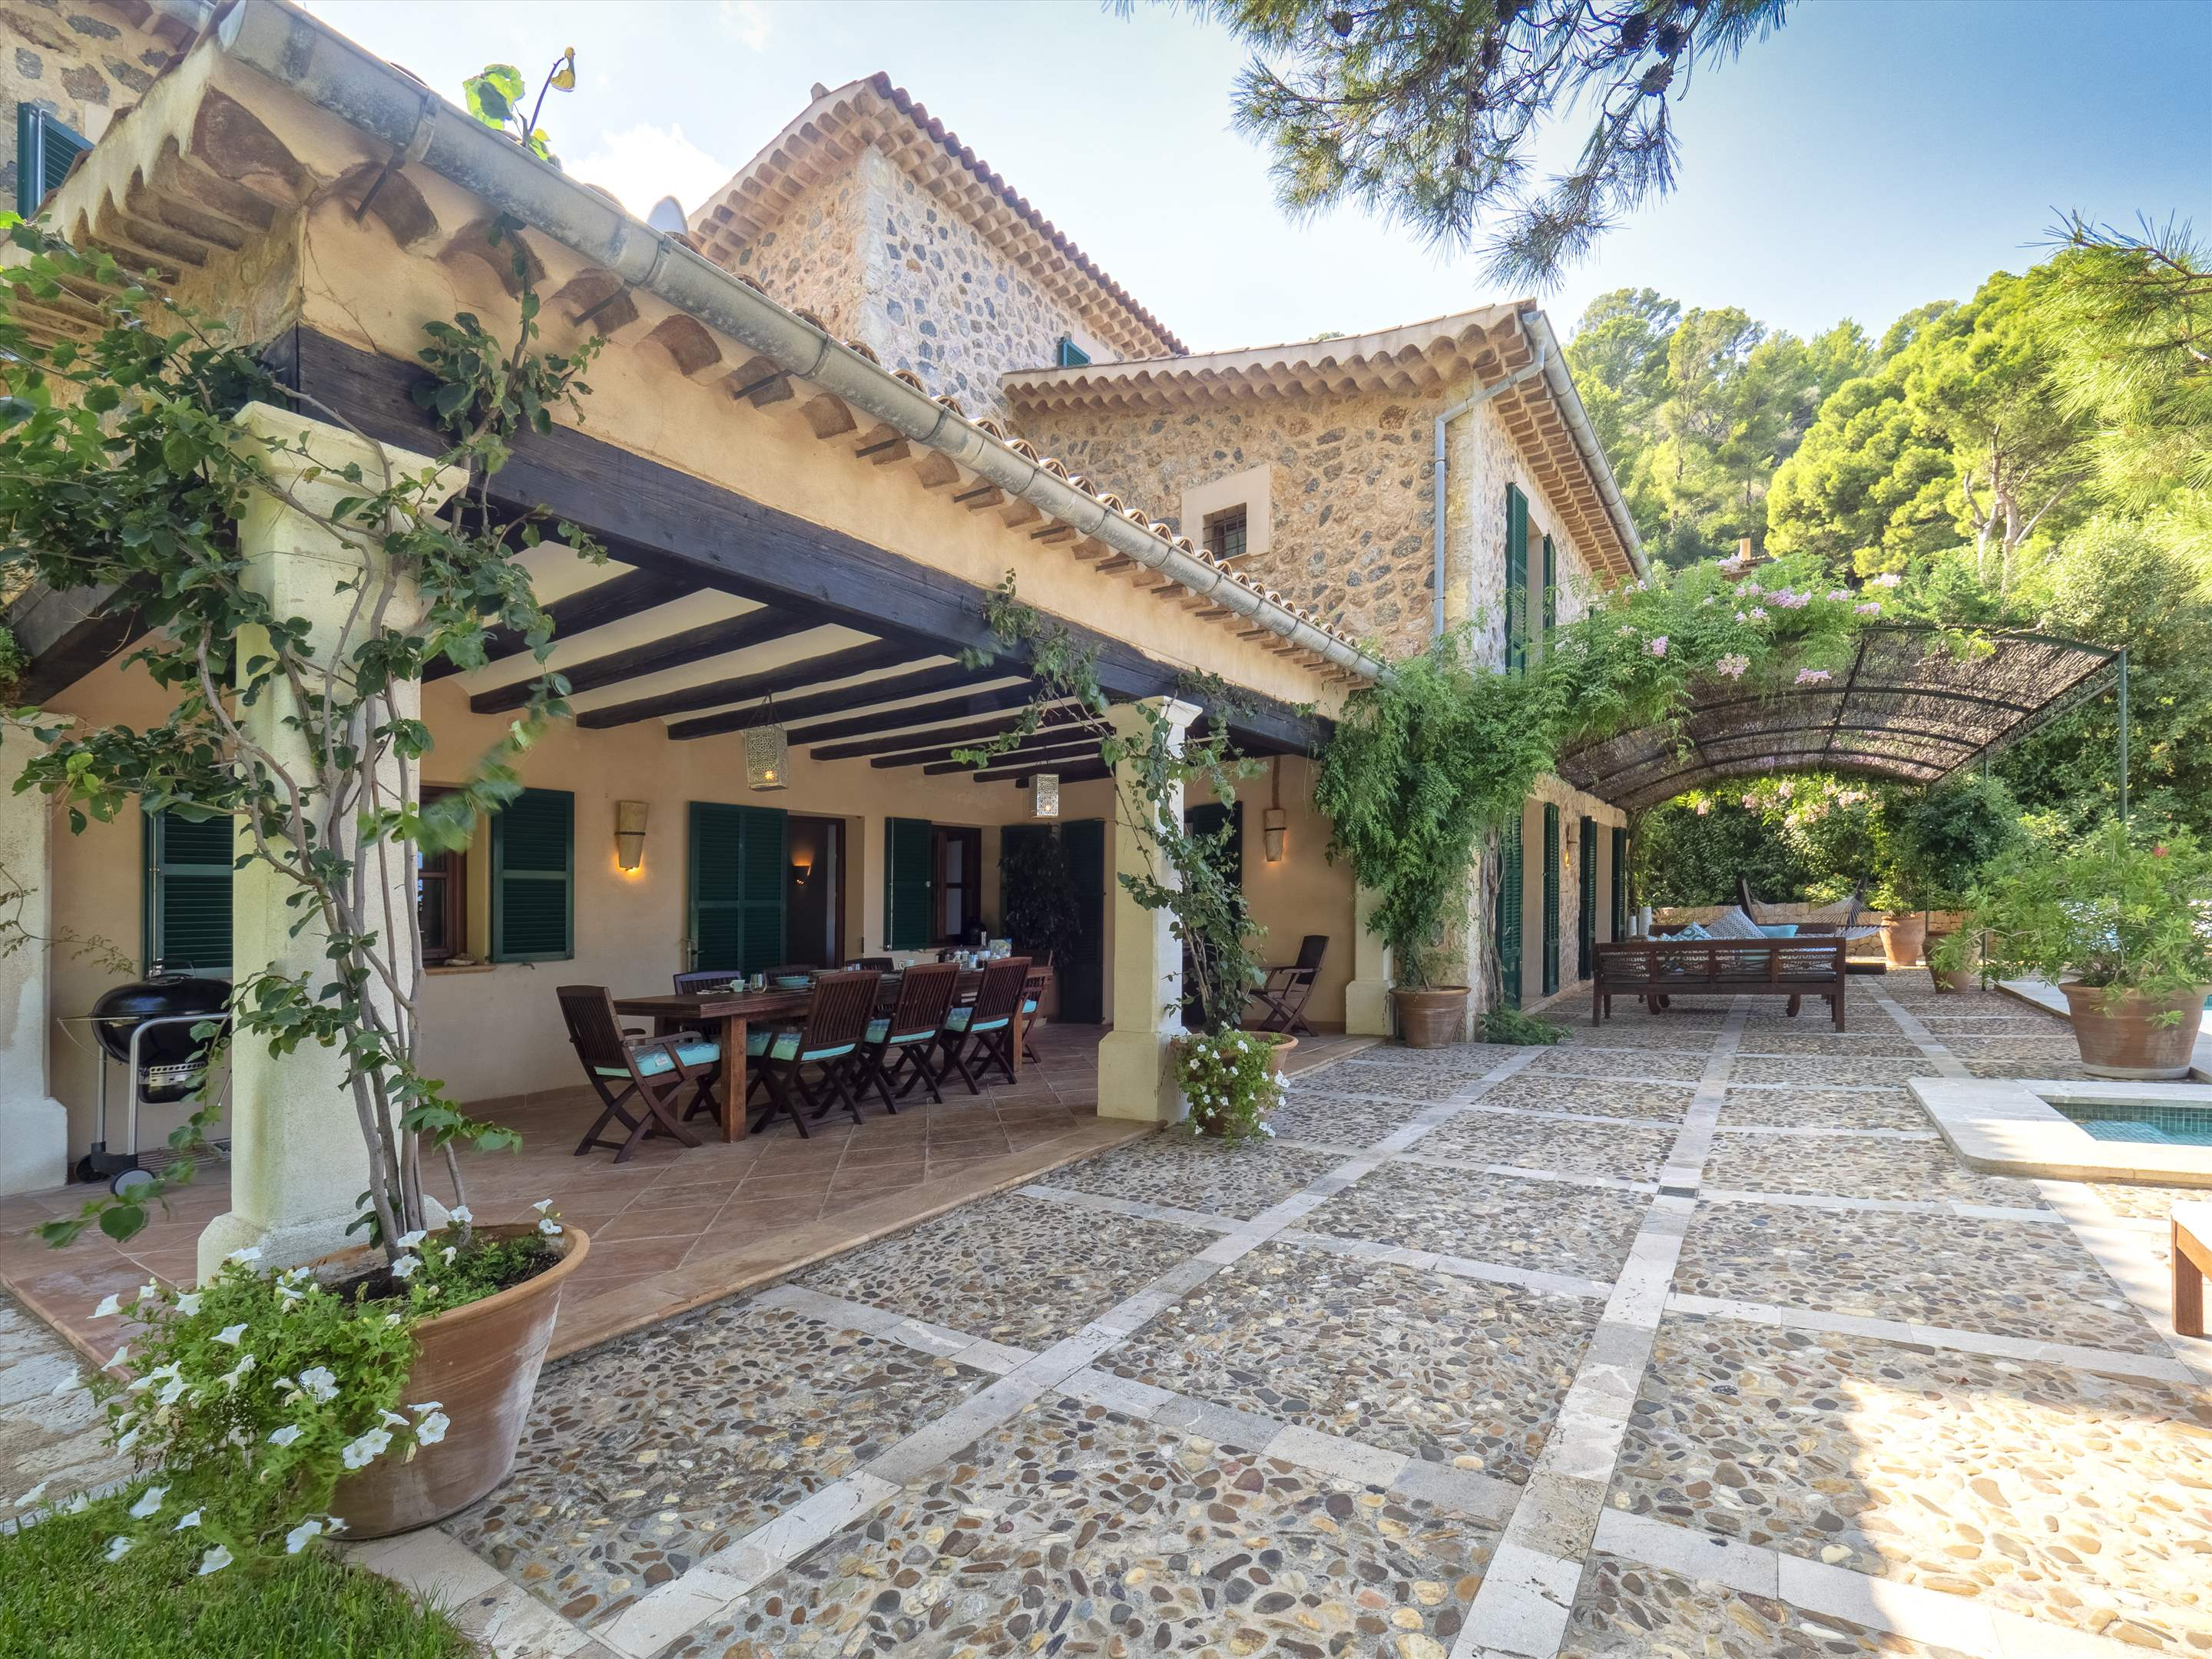 Sa Cala, 4 bedroom villa in Soller & Deia, Majorca Photo #5